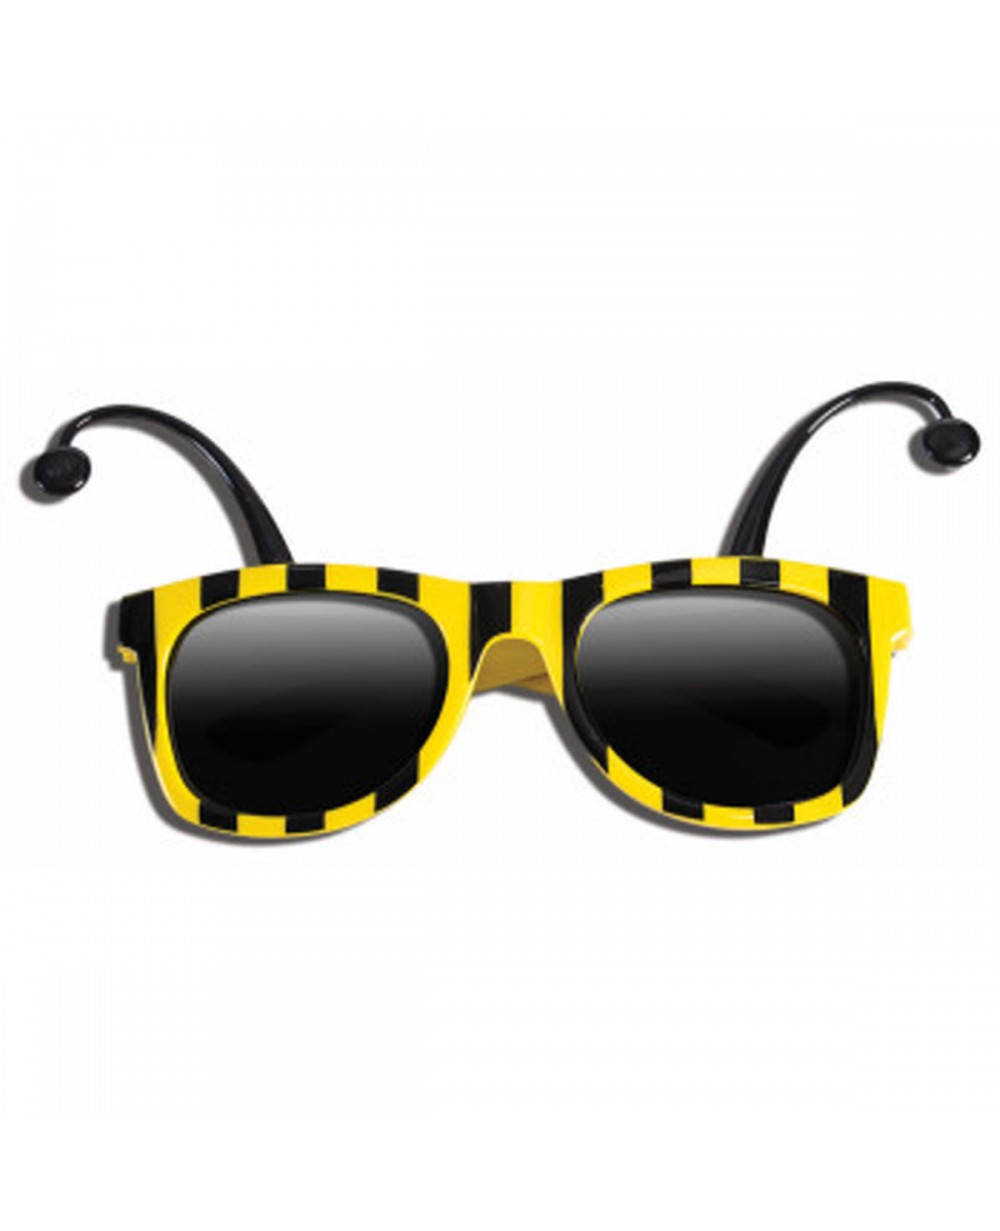 d89e20c60bc More Views. Bumble Bee Sunglasses With Antennae